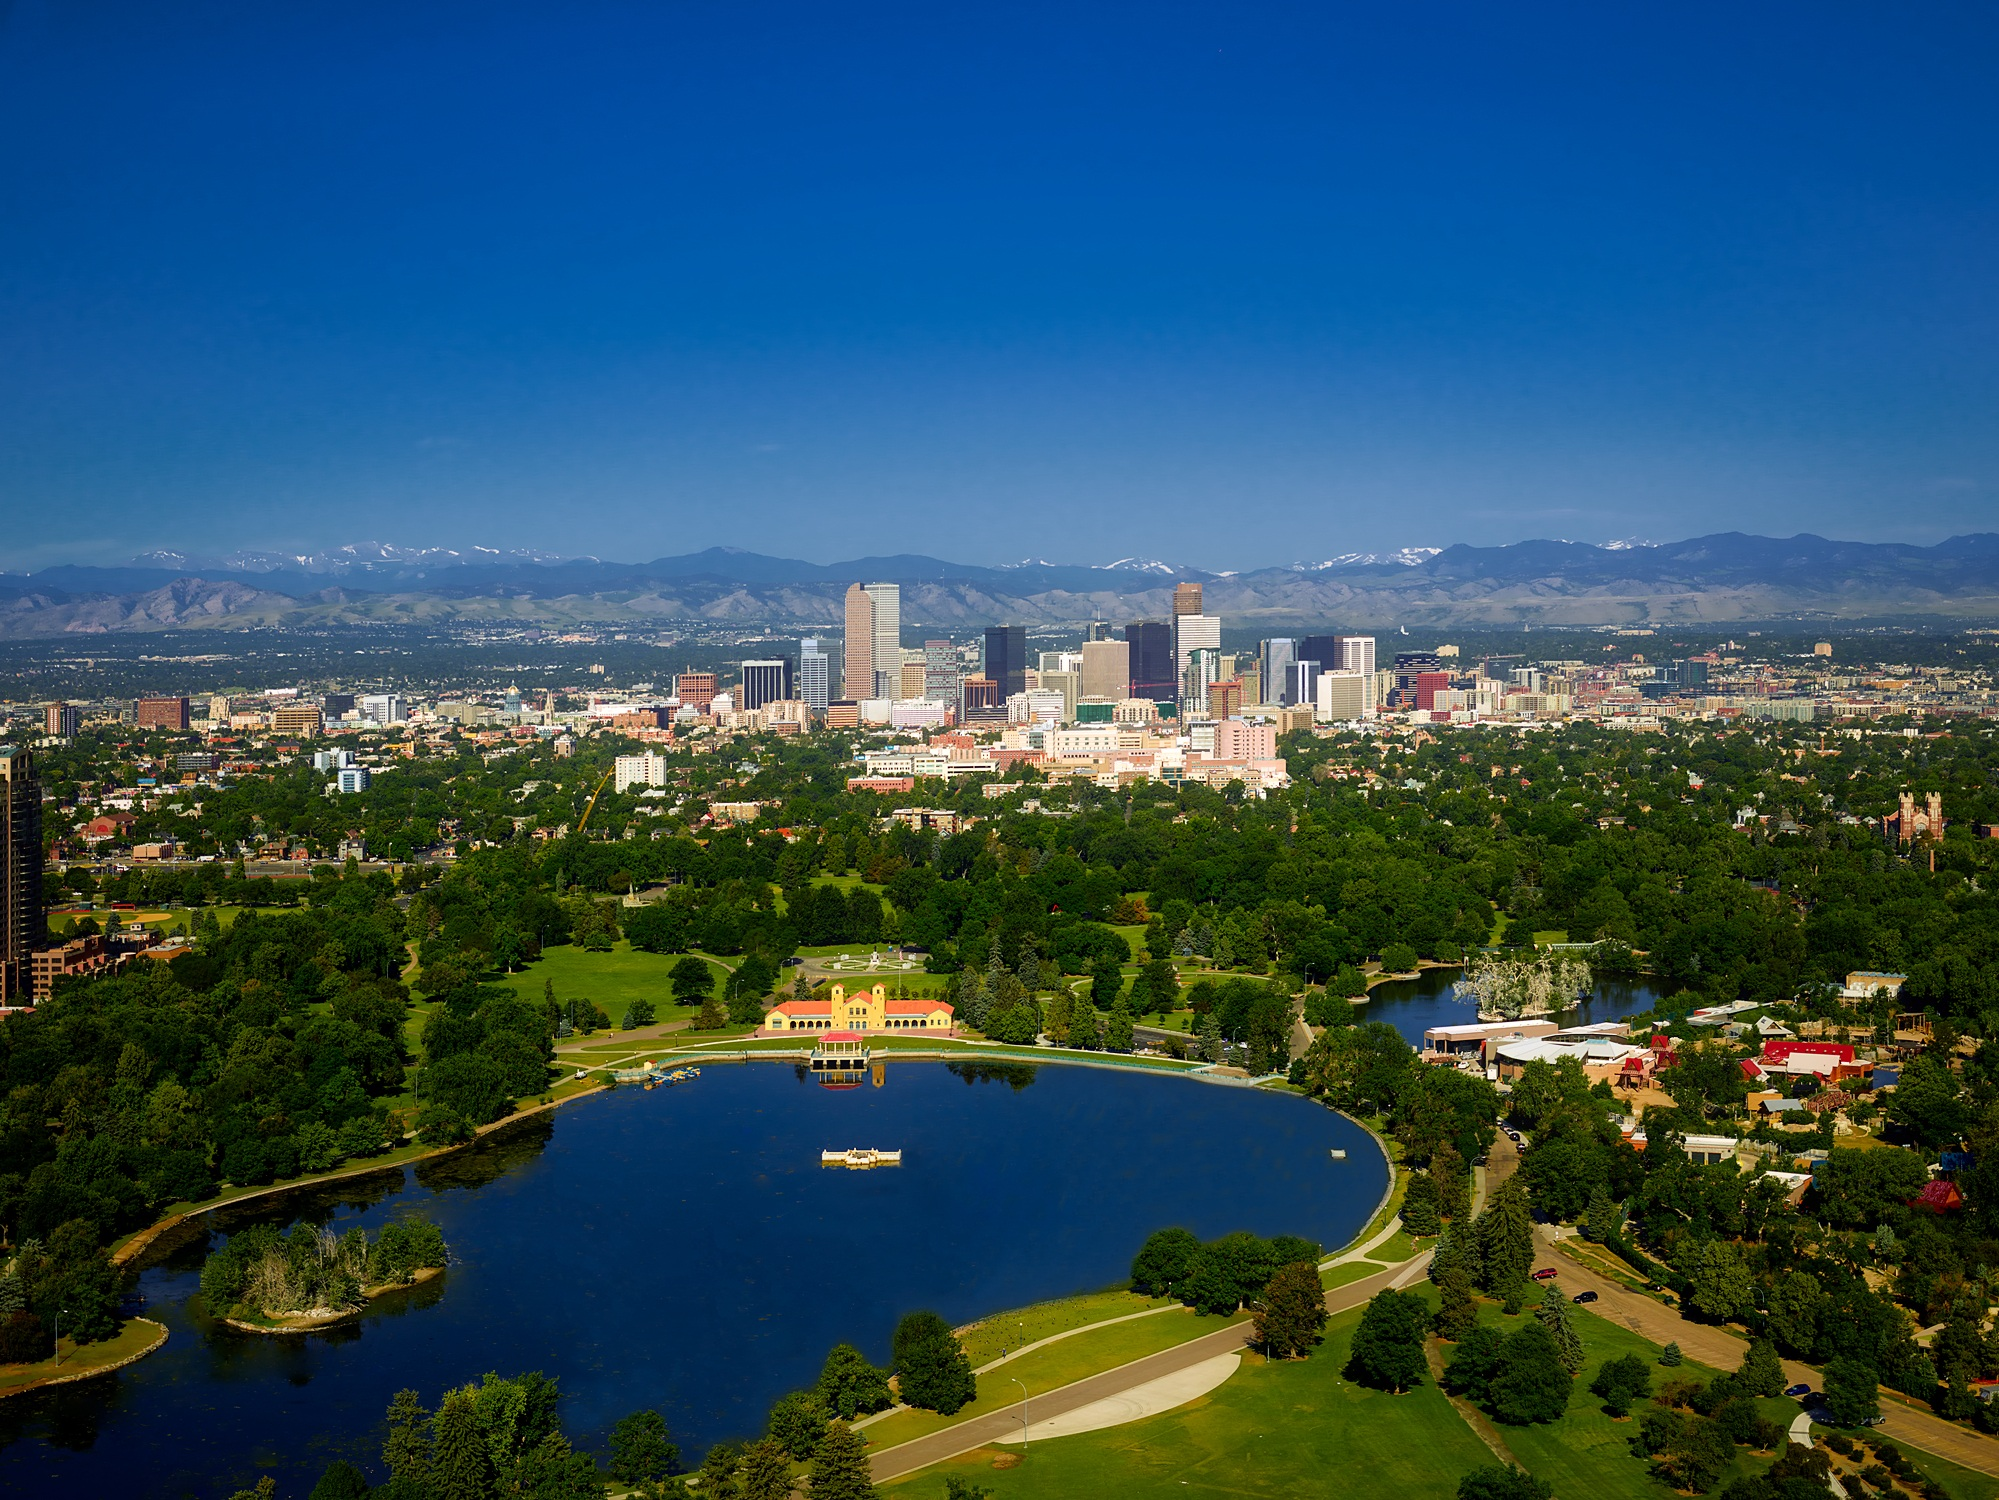 Top 5 Best Things to Do In Denver, Colorado